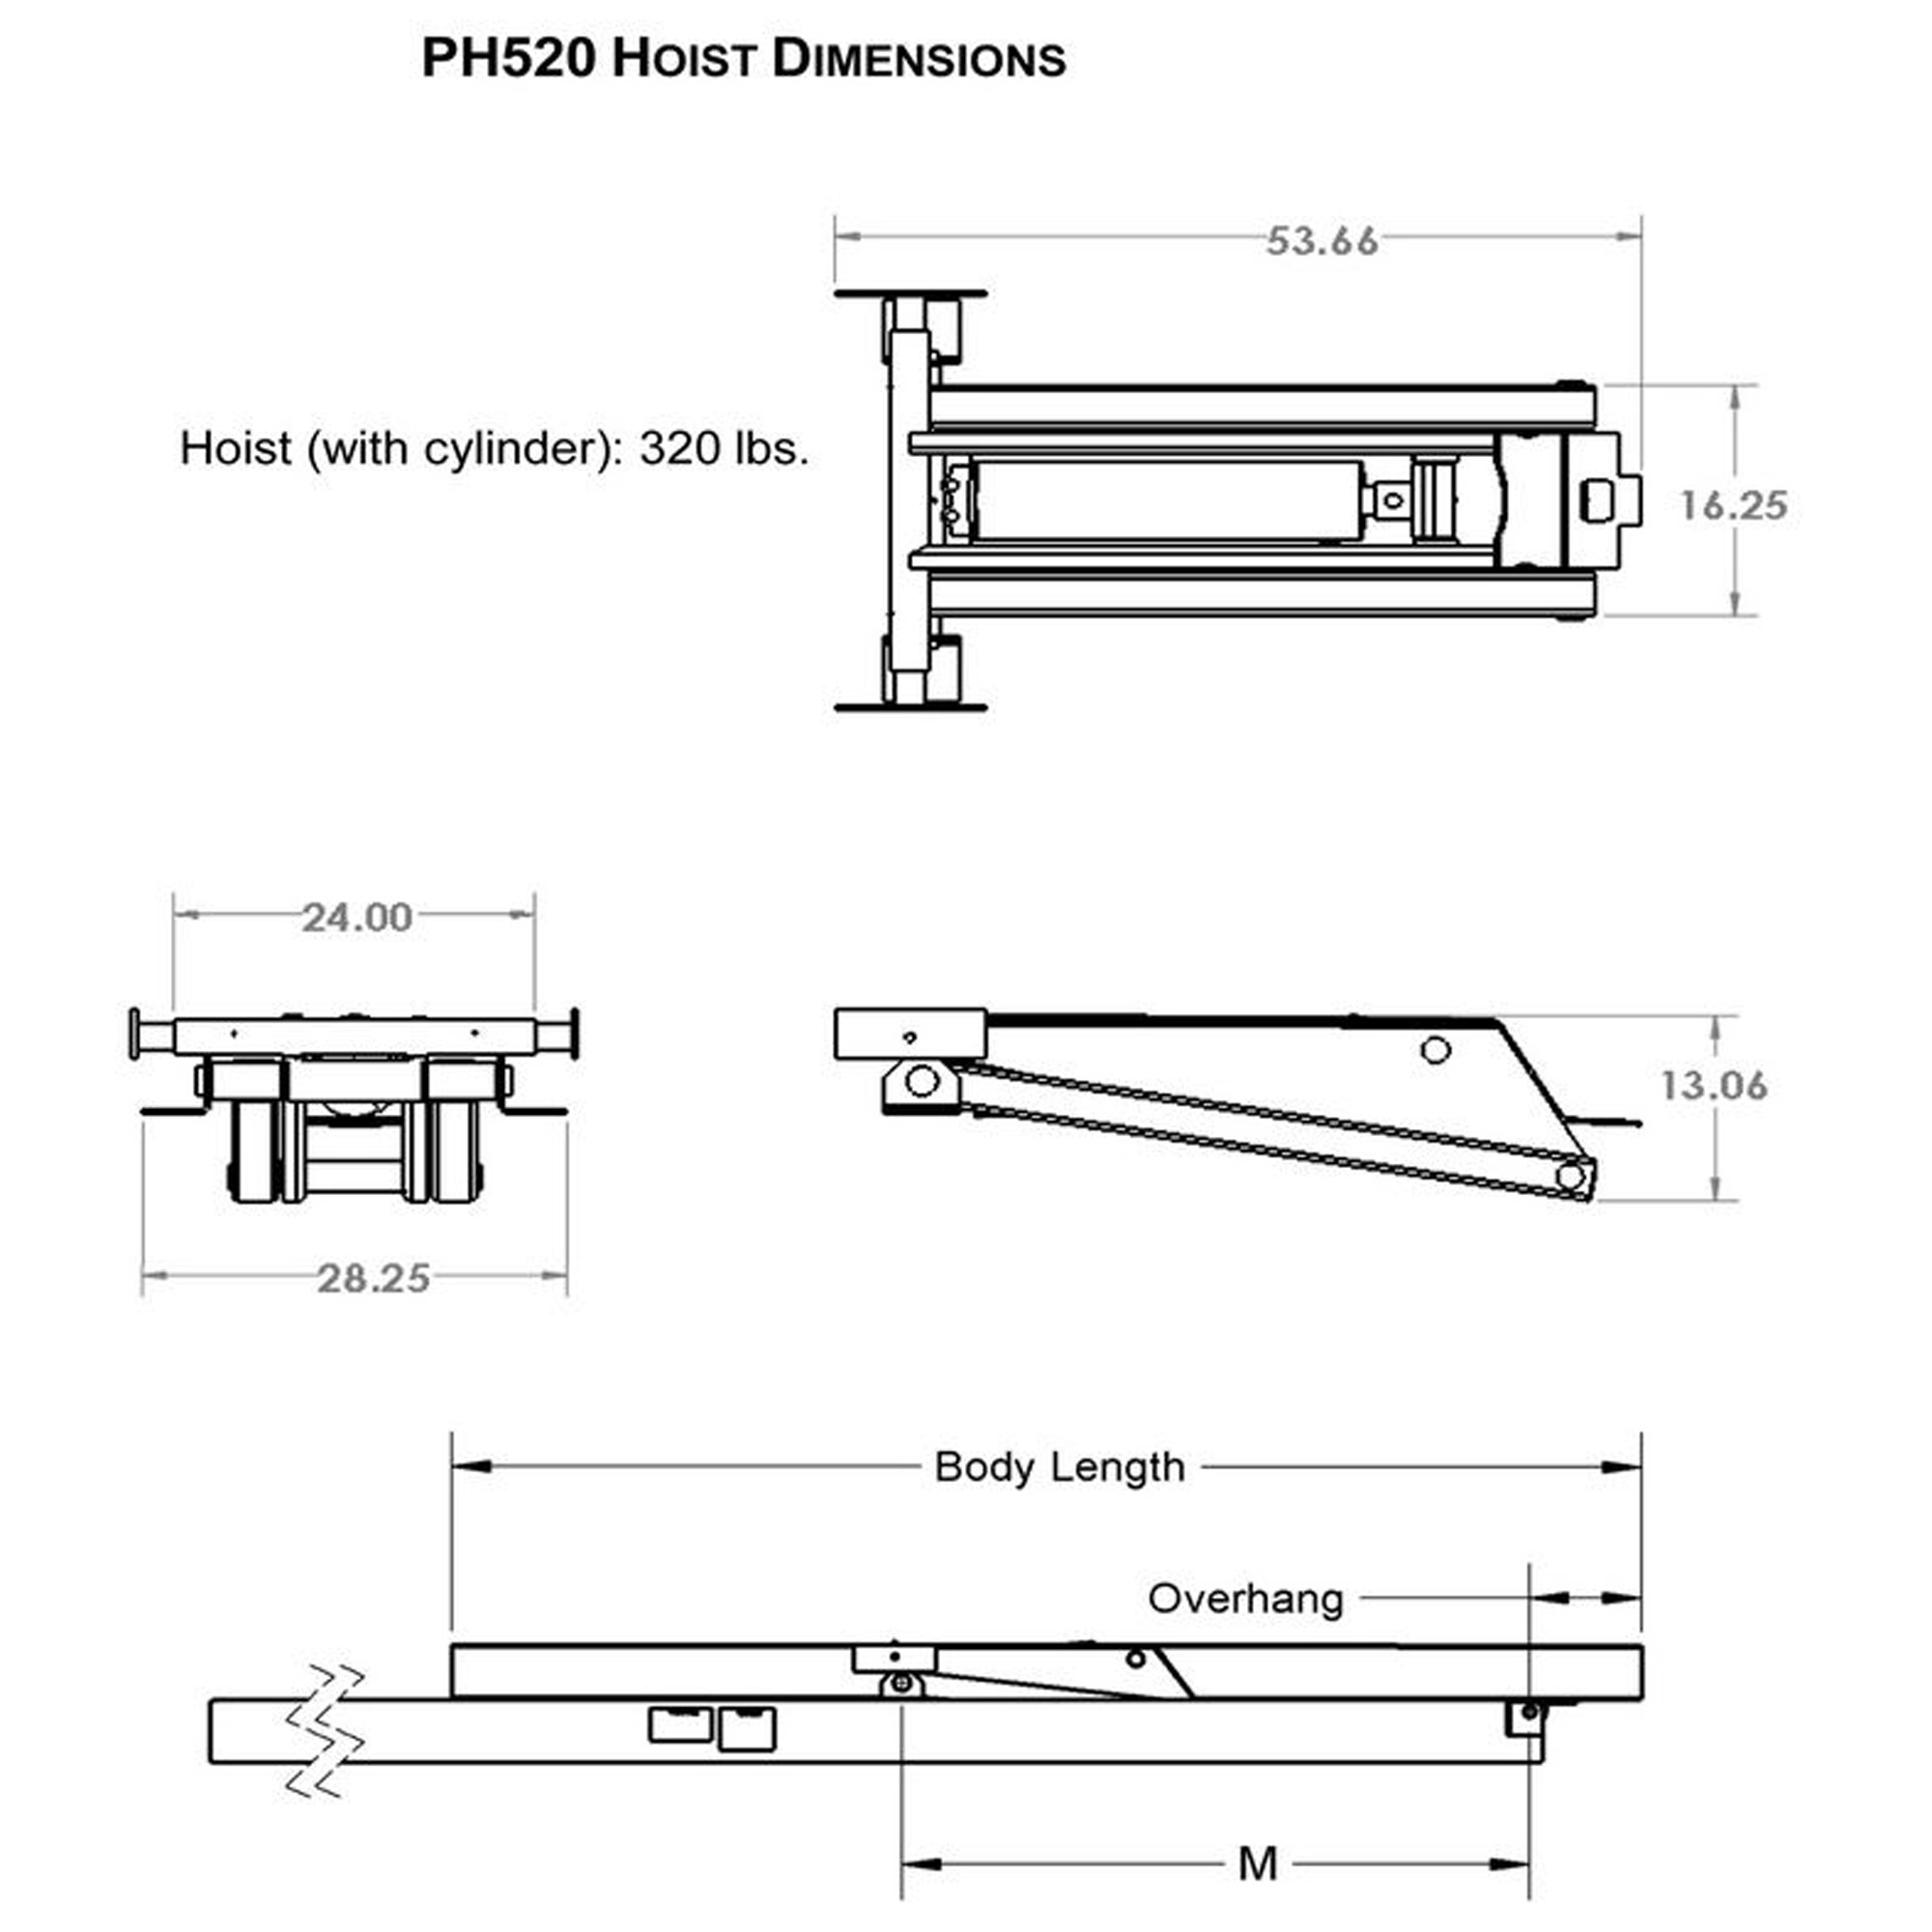 Premium Supply PH520 Power Hoist Dimensions?x88201 10 ton (20,000 lb) dump trailer hydraulic scissor hoist kit ph520 dump trailer hydraulic pump wiring diagram at pacquiaovsvargaslive.co